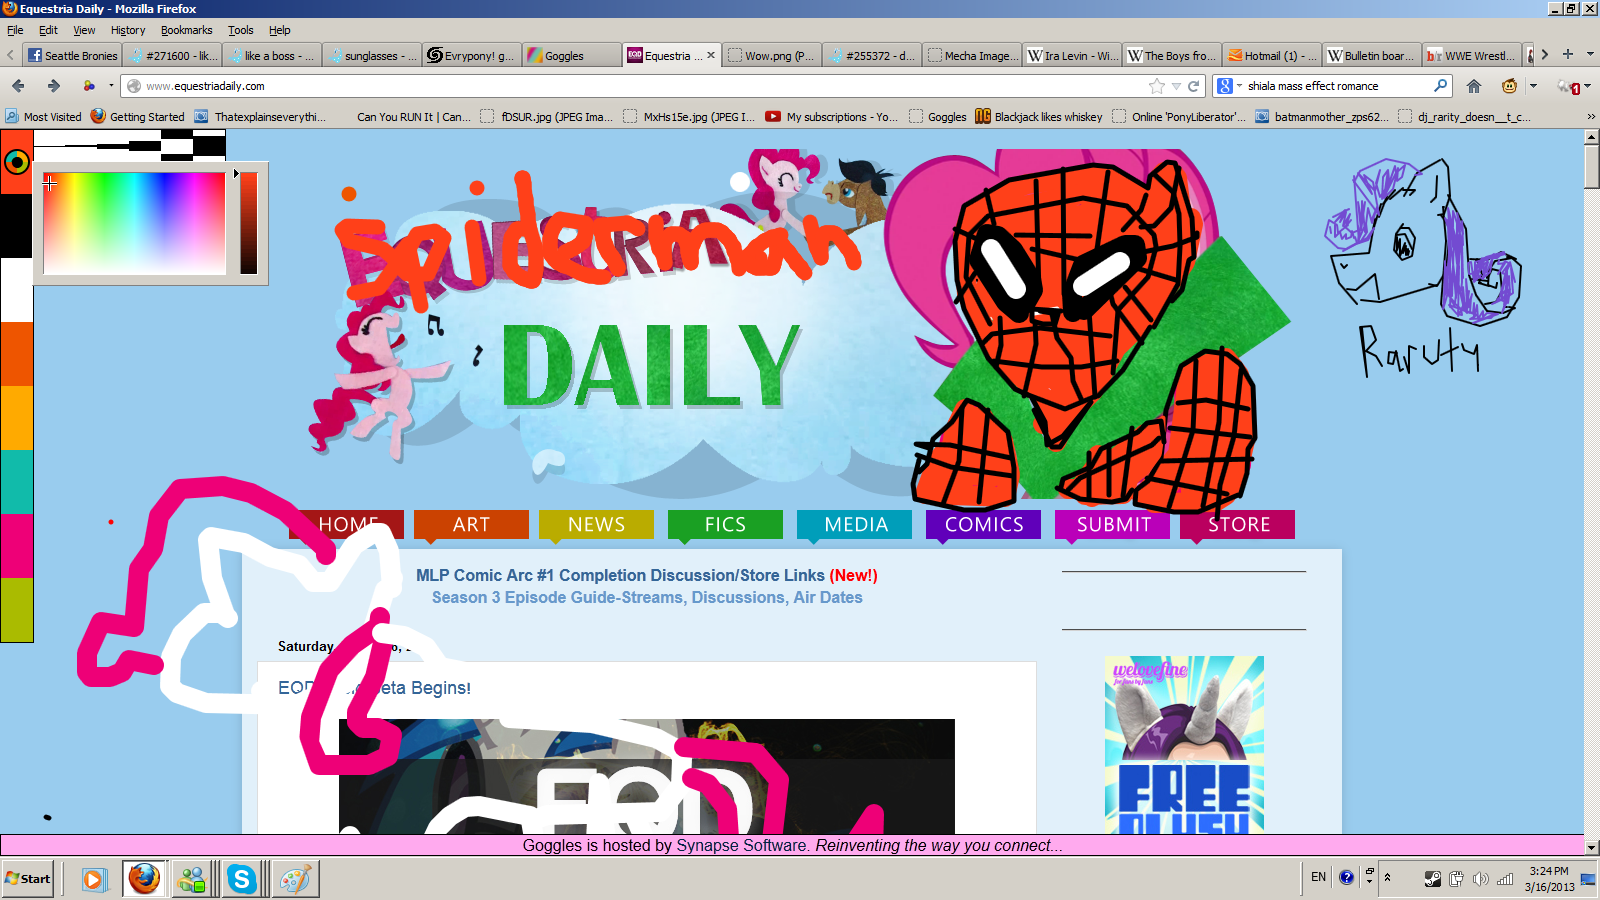 Evrypony! get this now! Spider-man20daily_zps6c0c21c7